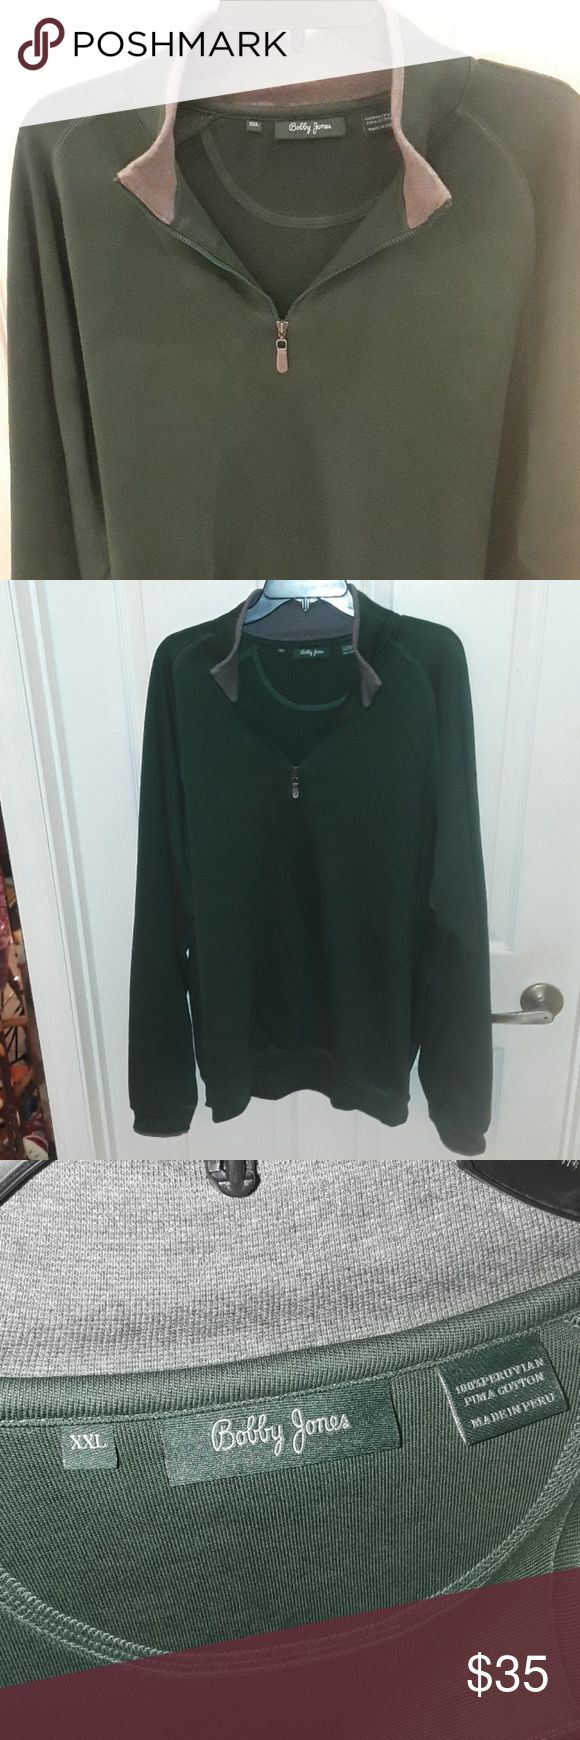 Bobby Jones  XXL half zip sweater Bobby Jones XXL half zip sweater, gently used condition no rips or stains. 100% Pima cotton, very nice soft cotton material. Great for golf fans, beautiful crafted sweater, great condition look at photos before purchasing, smoke-free home ask questions is all sales are final happy poshing. Bobby Jones Sweaters